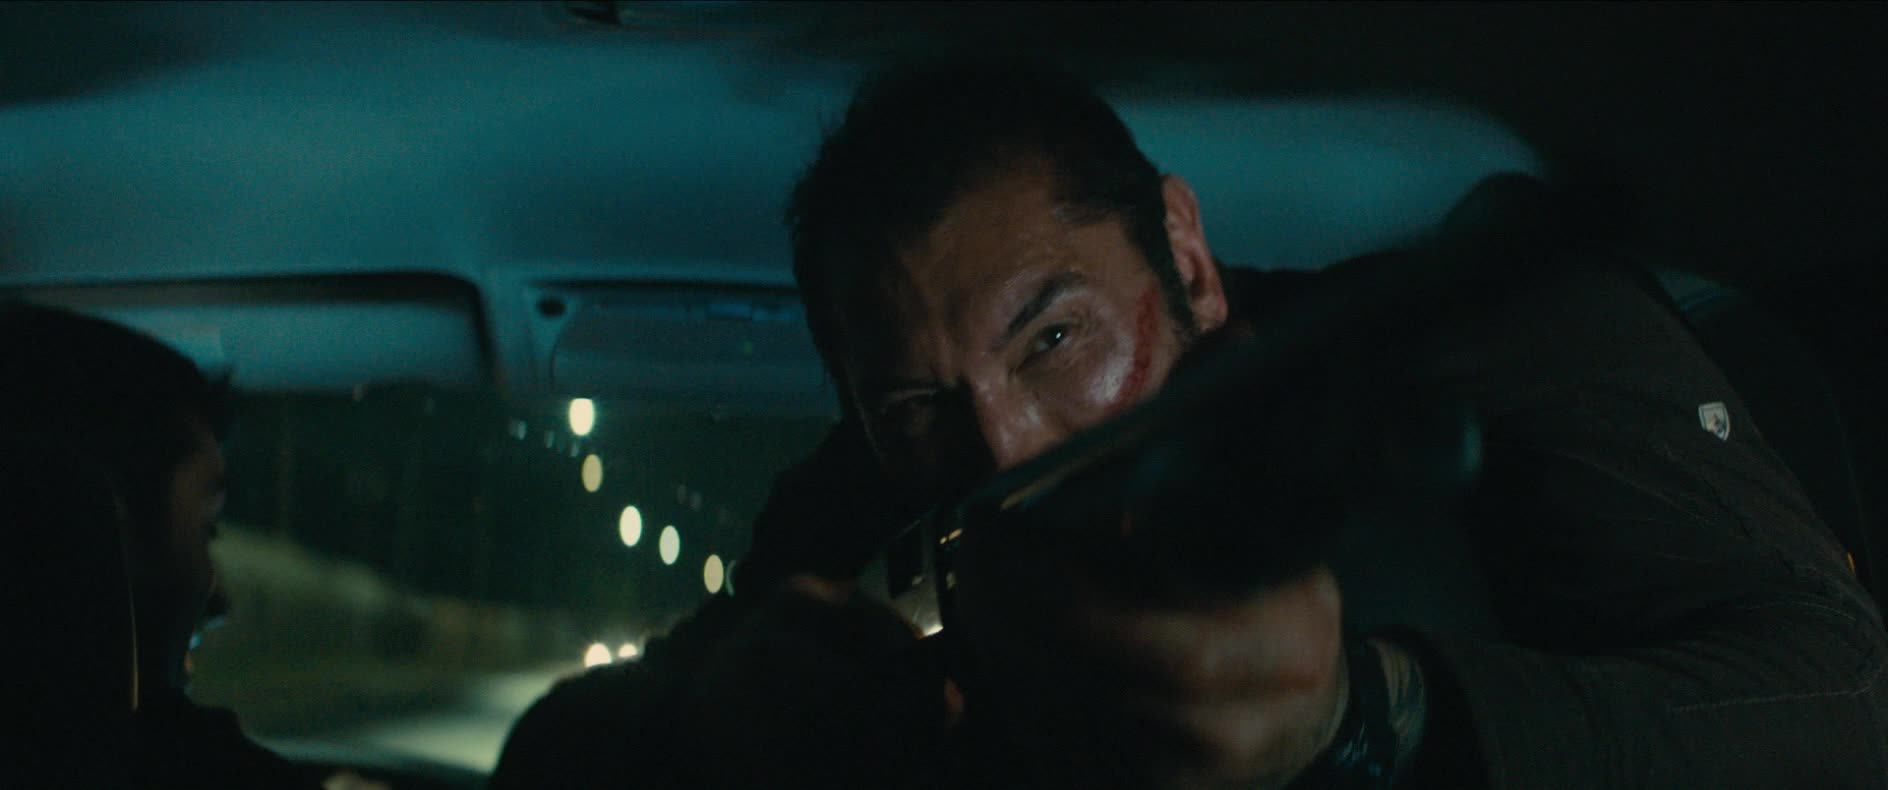 dave bautista, explosion, kumail nanjiani, omg, stuber, stuber movie, suprise, surprise, wow, Car Explosion Wow GIFs